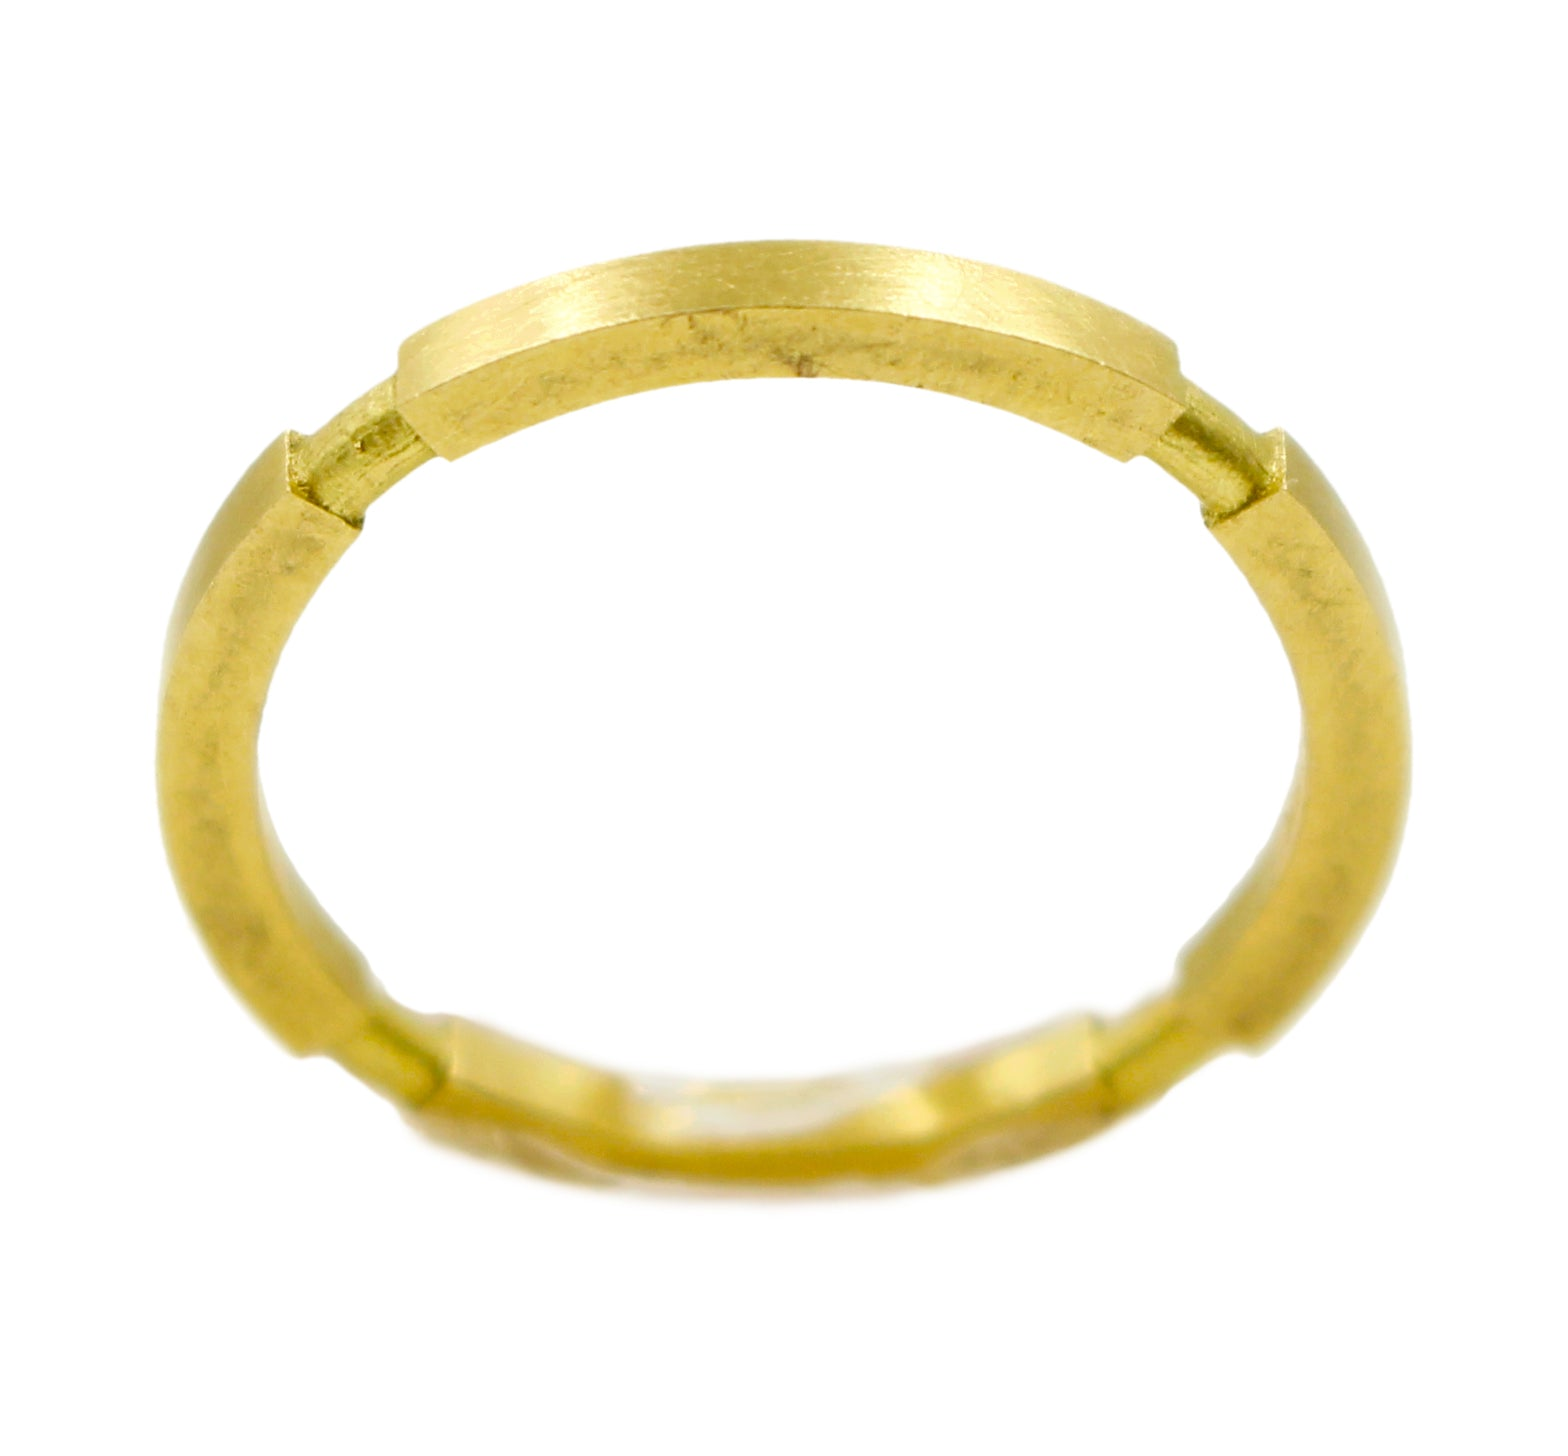 18k Square stack ring